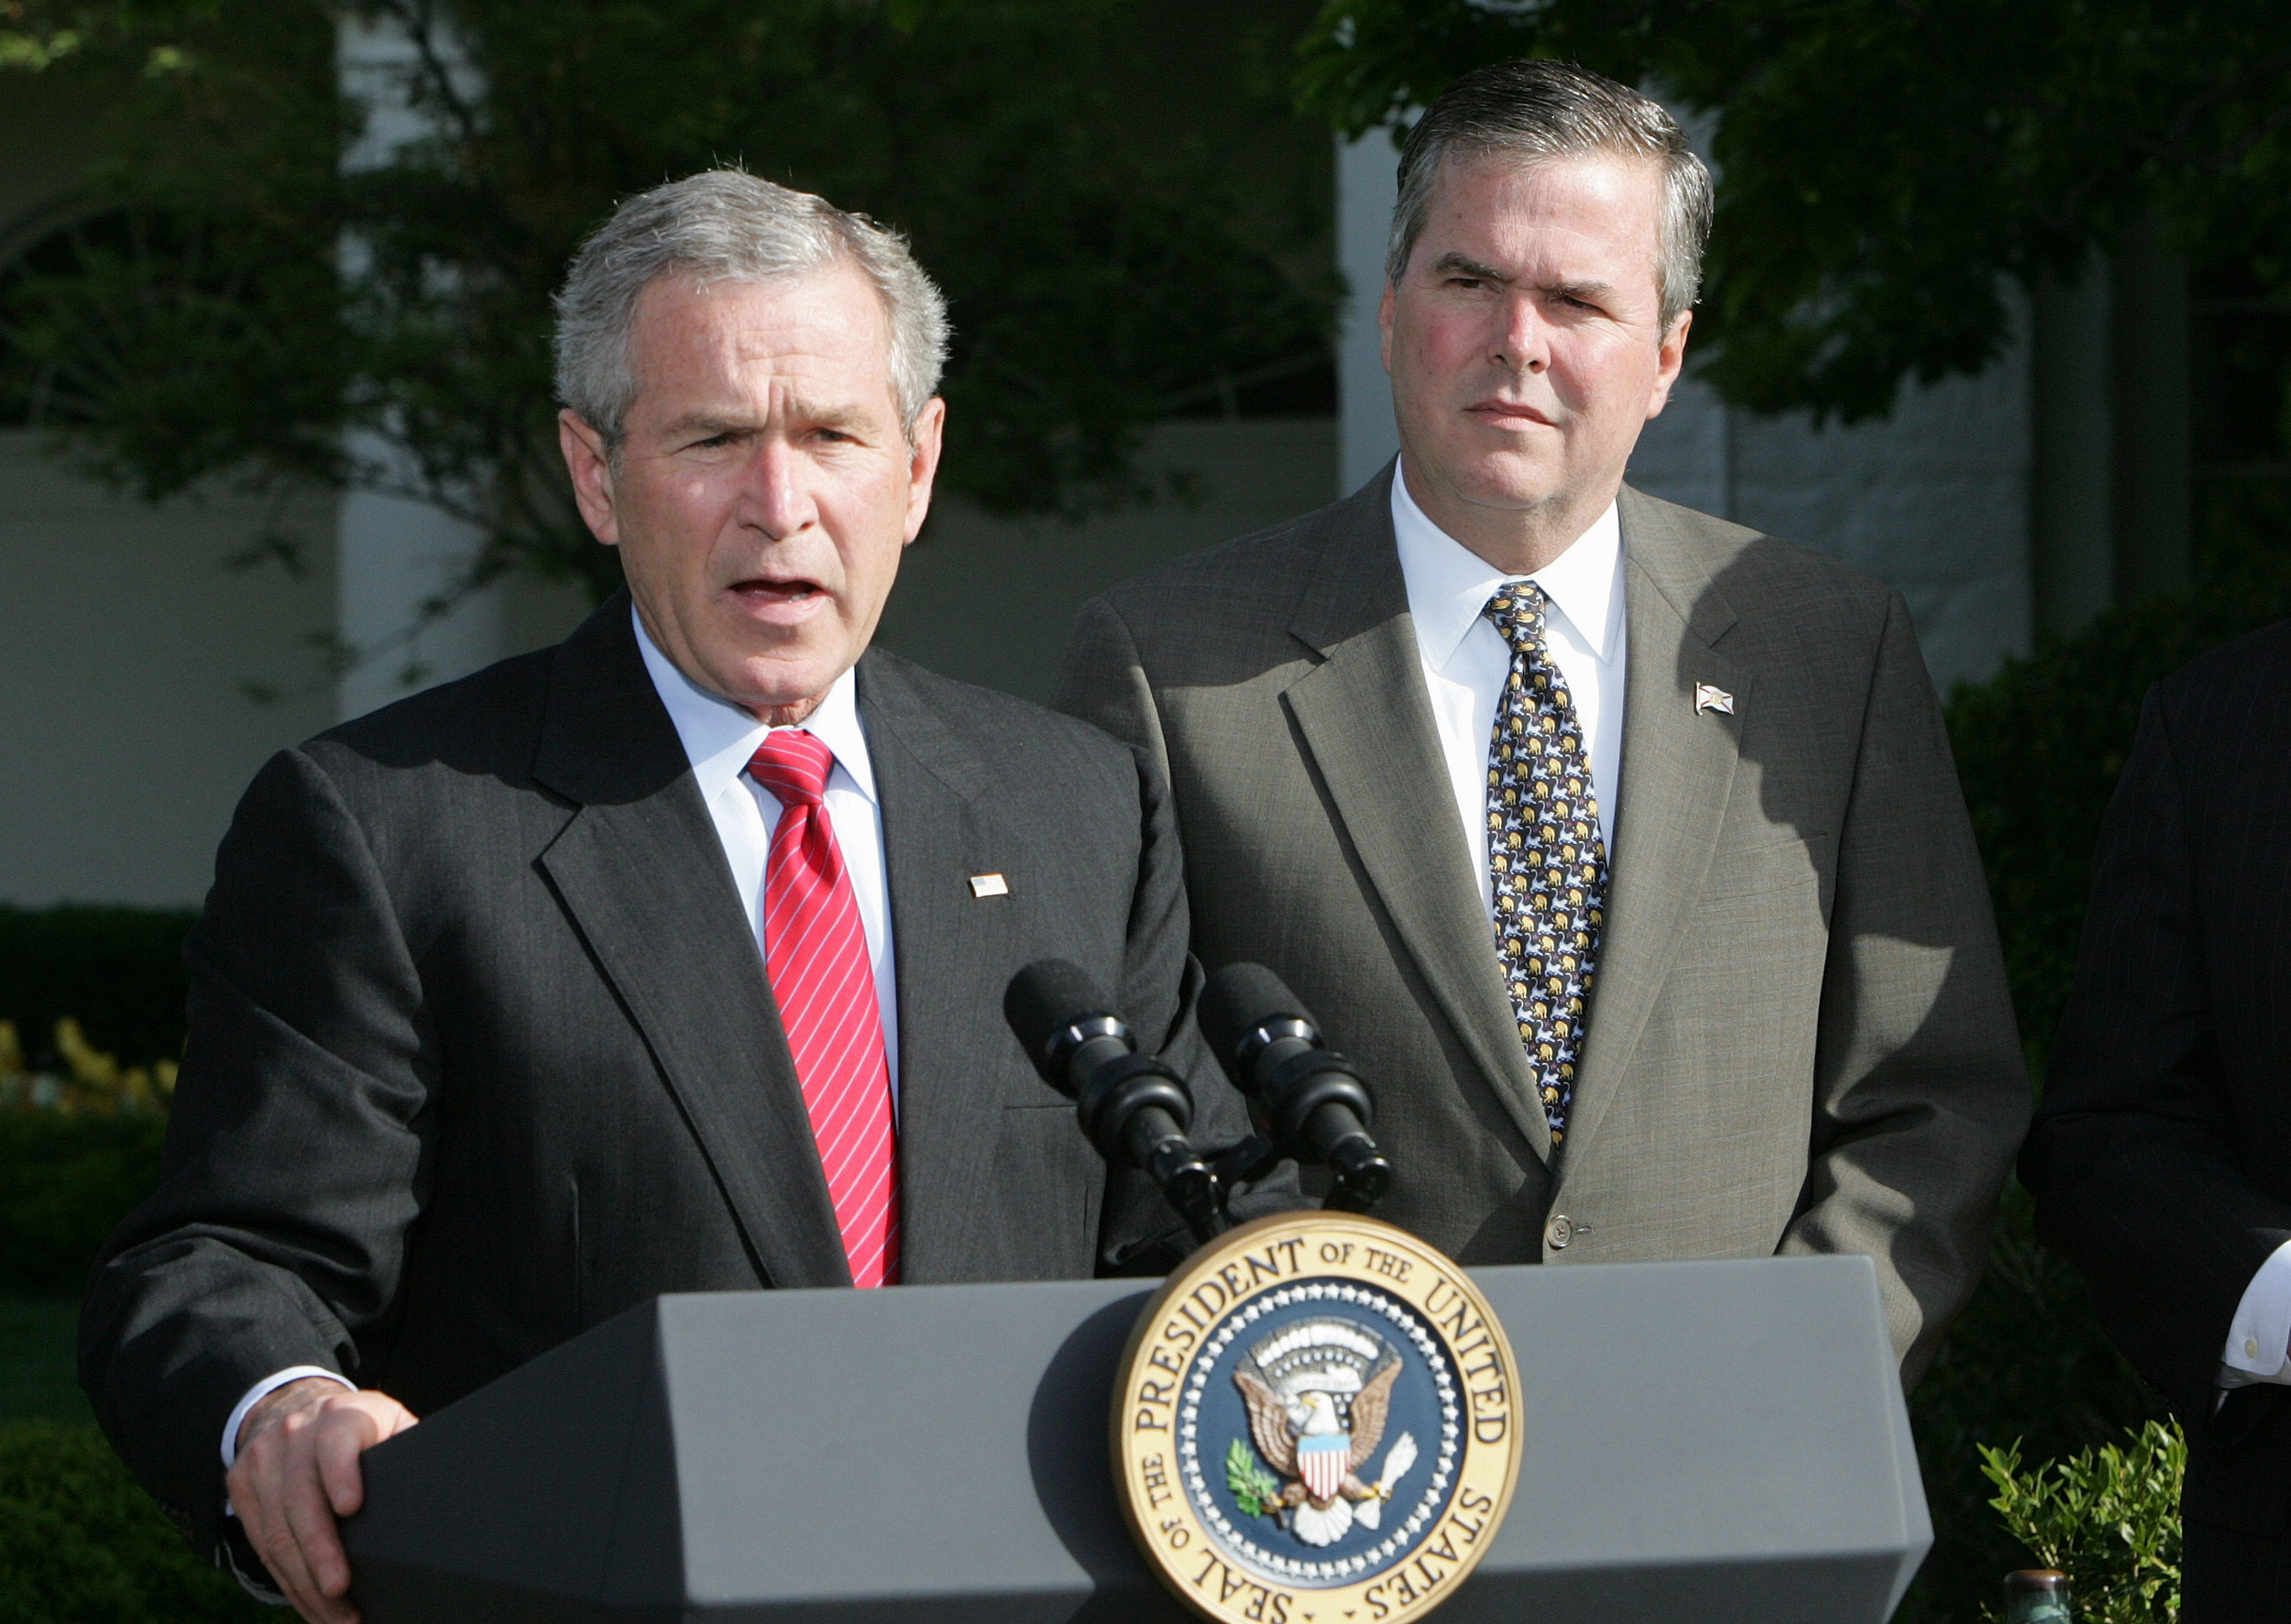 In this April 19, 2006 file photo, President George W. Bush, accompanied by his brother, then-Fla. Gov. Jeb Bush, speaks on the South Lawn at the White House in Washington. (Ron Edmonds, File/AP)